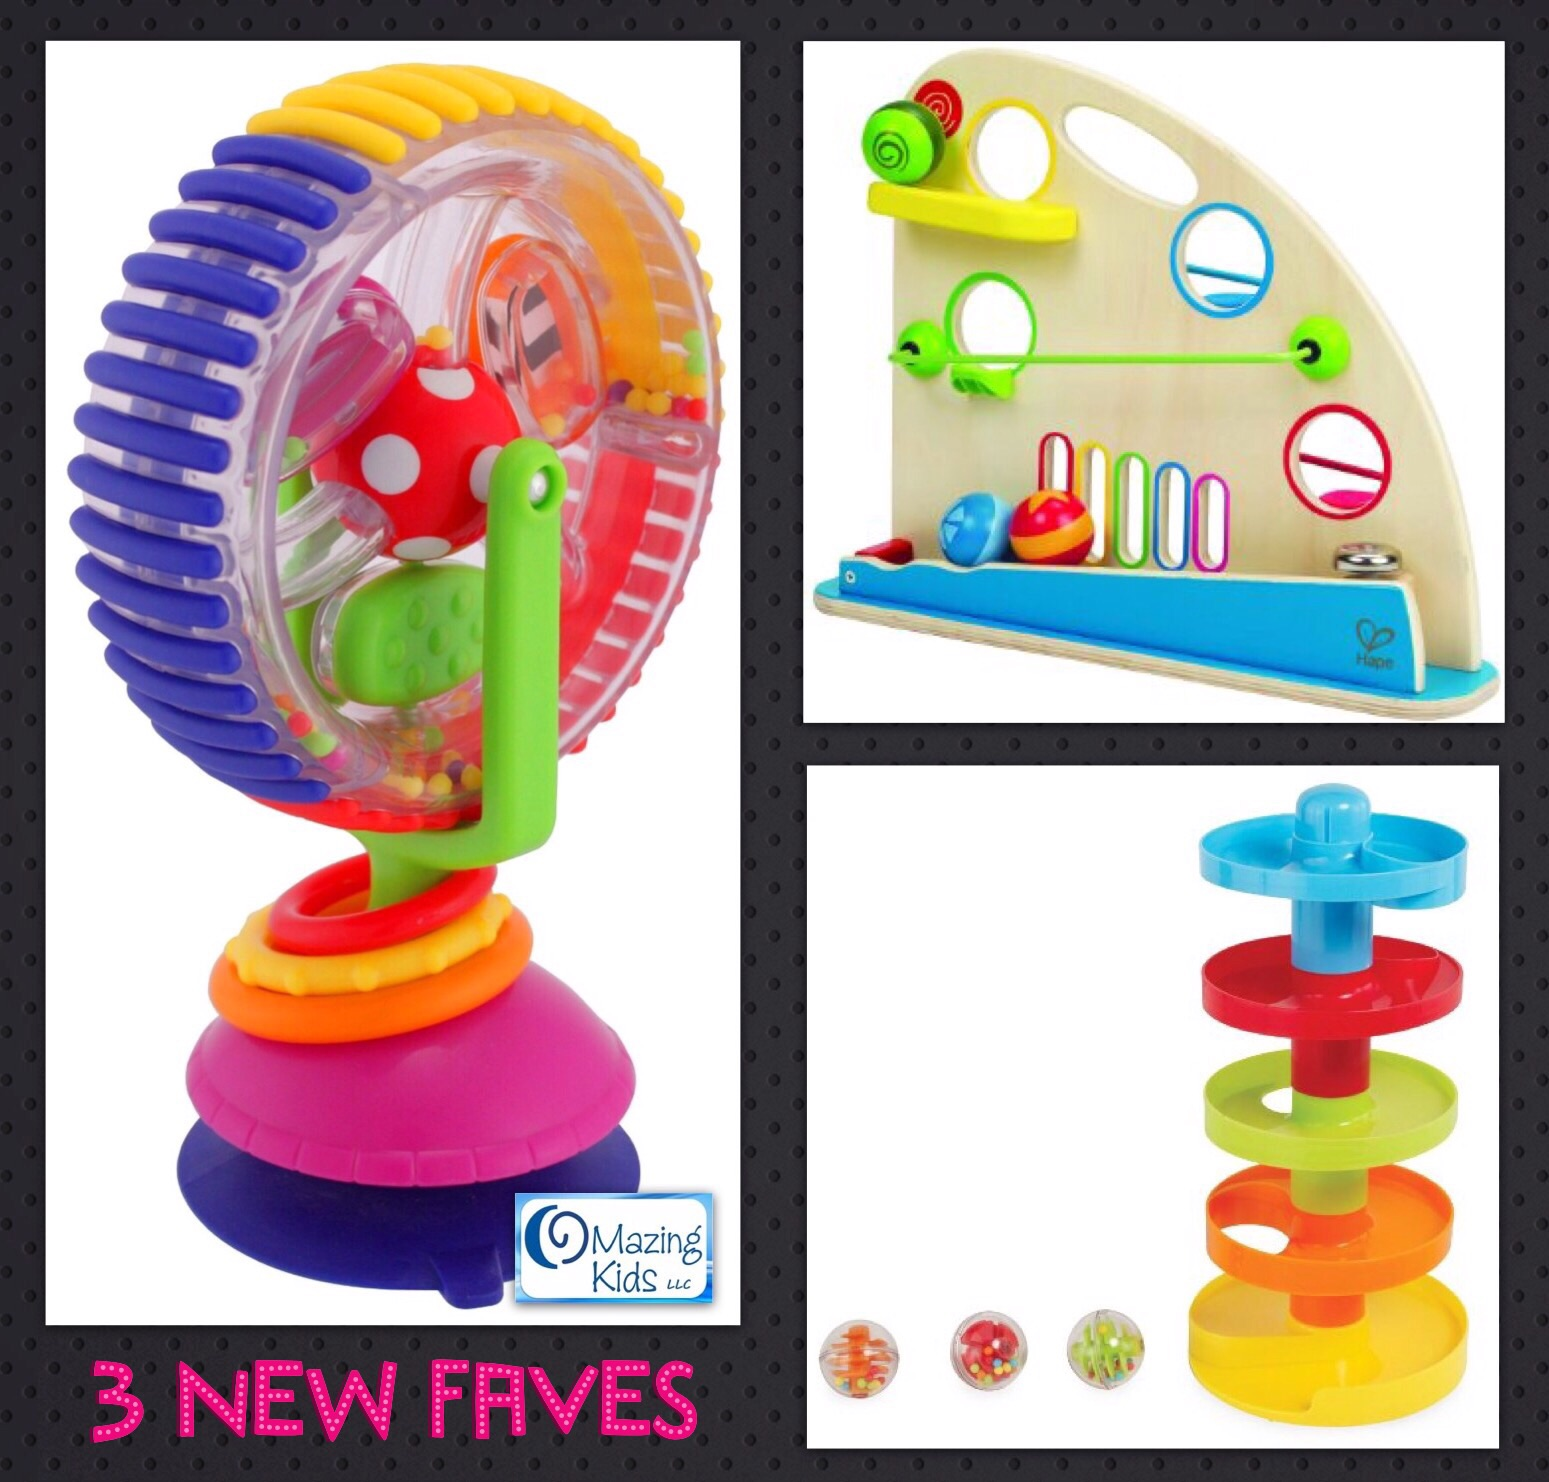 3 Favorite Toys Wonder Wheel Ball Mountain & Ball Drop Tower